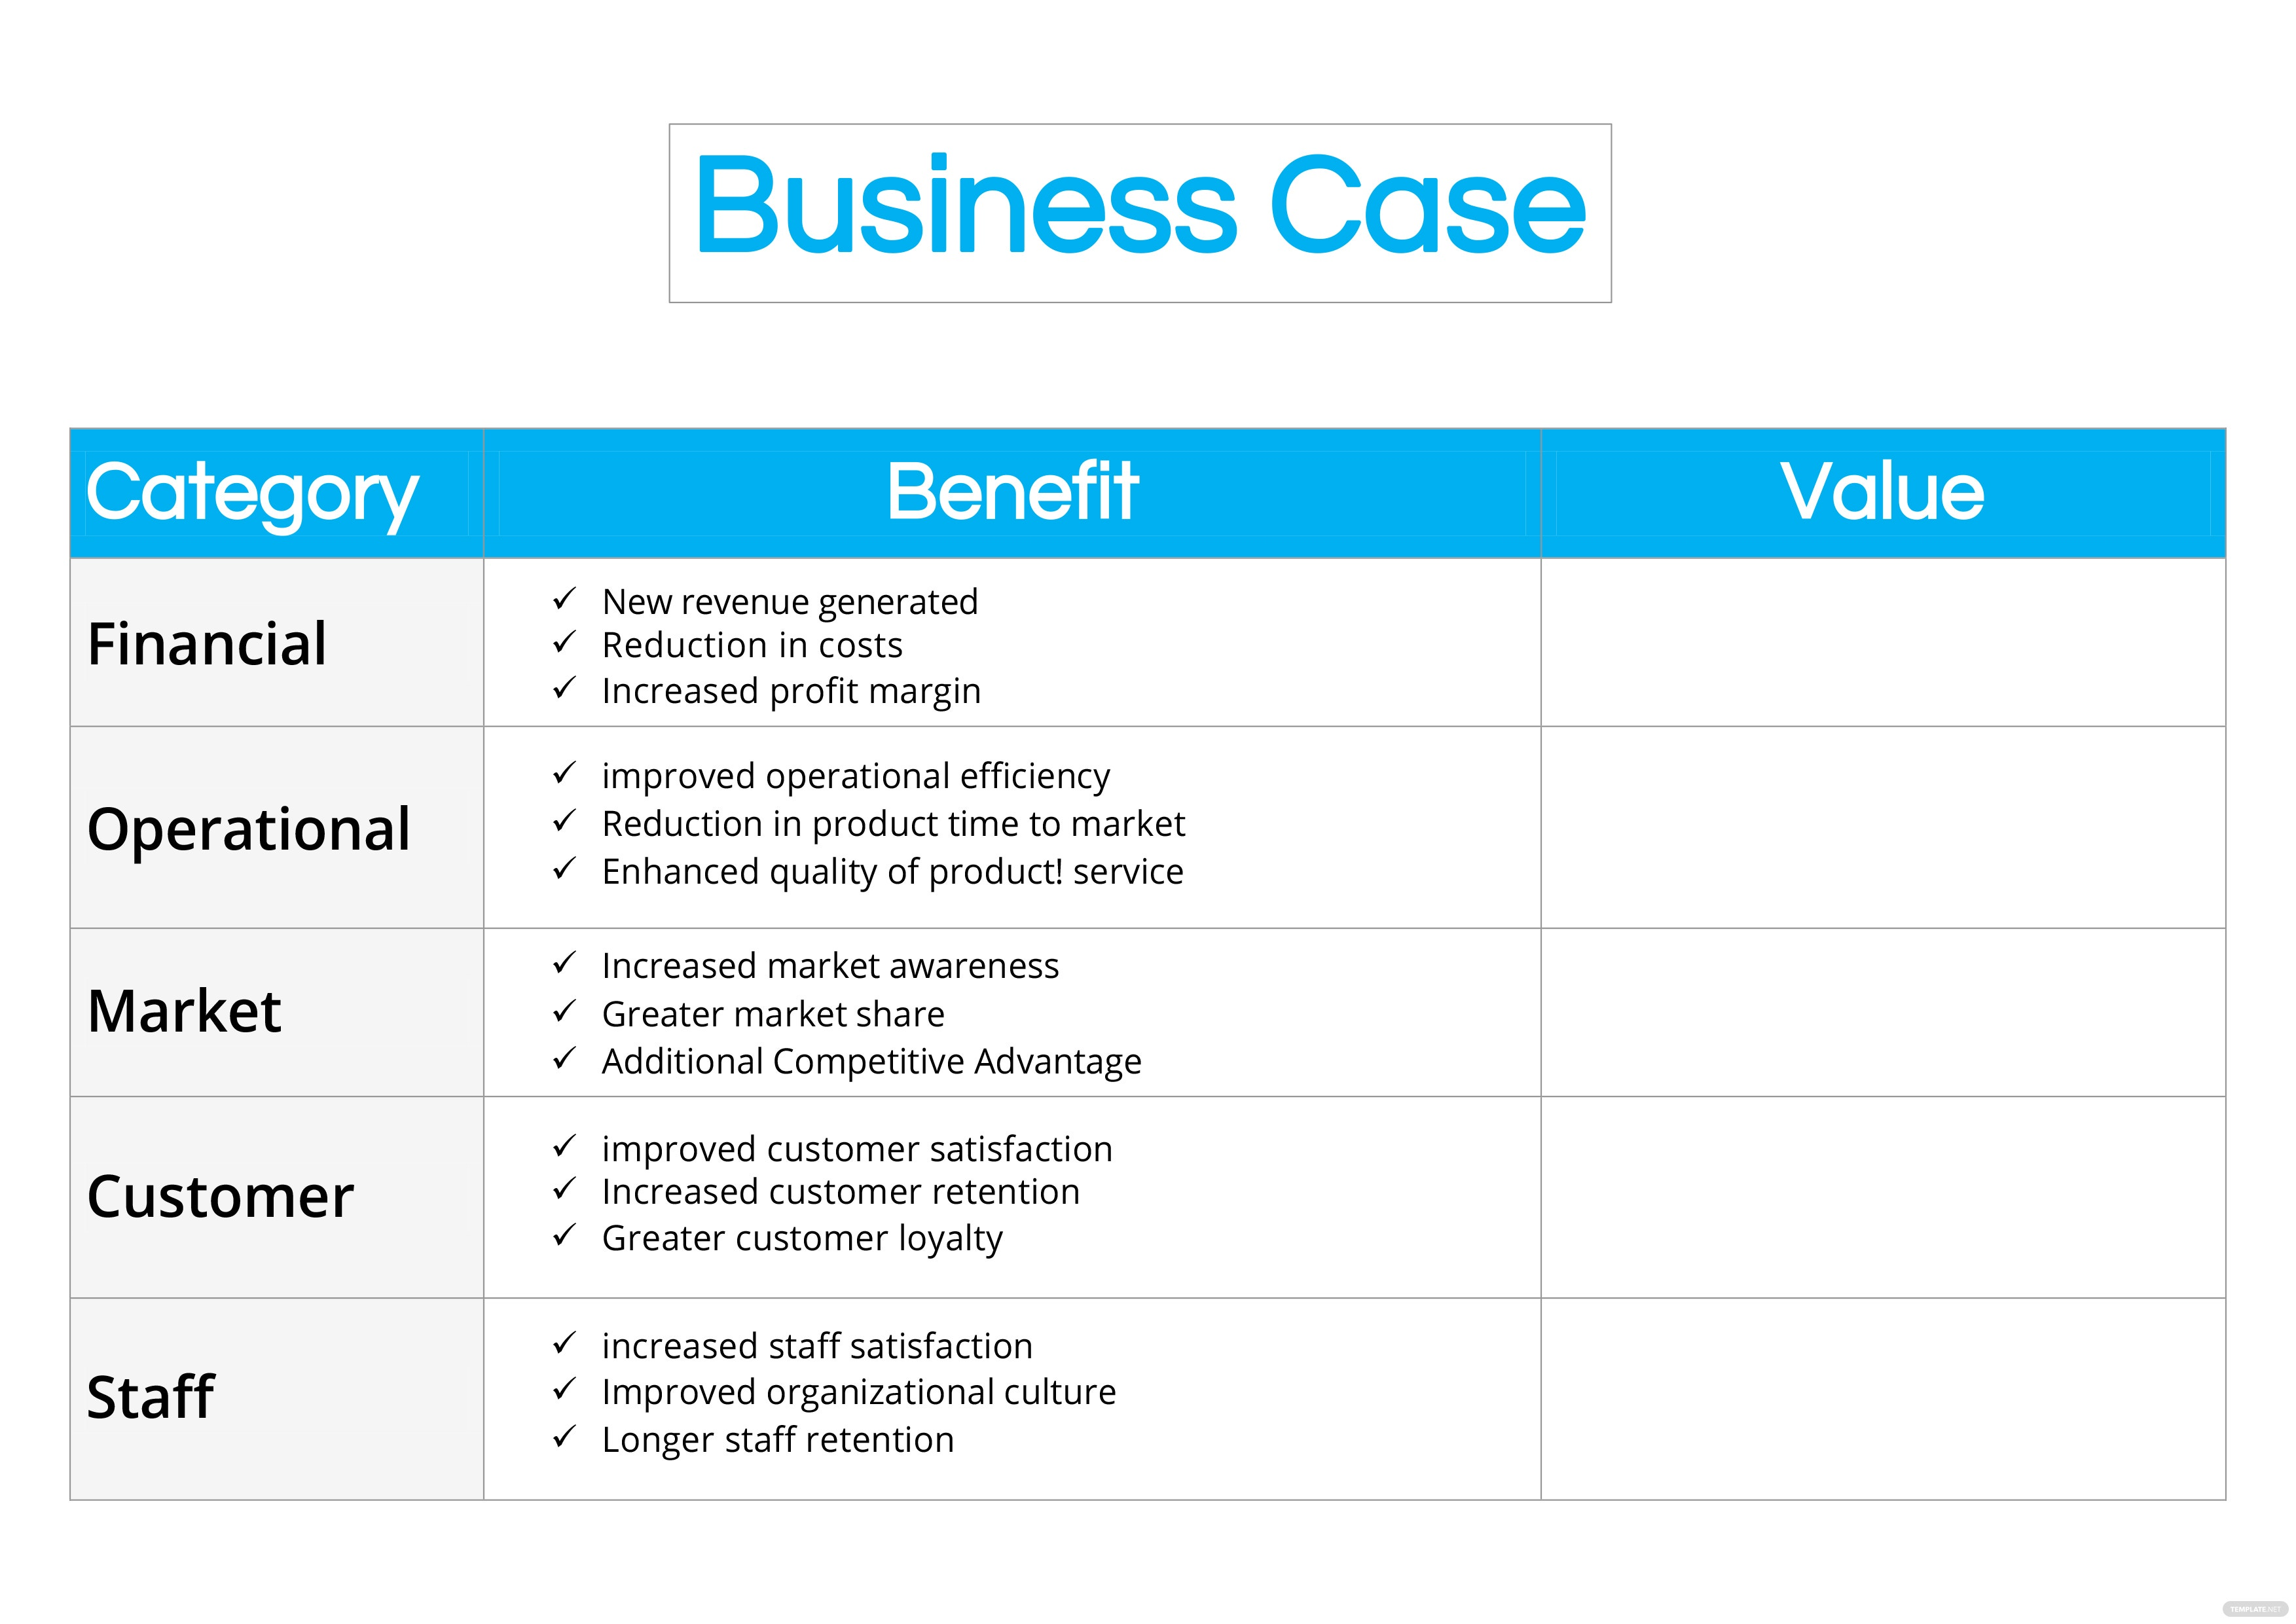 Business case template in microsoft word template click to see full template business case accmission Gallery